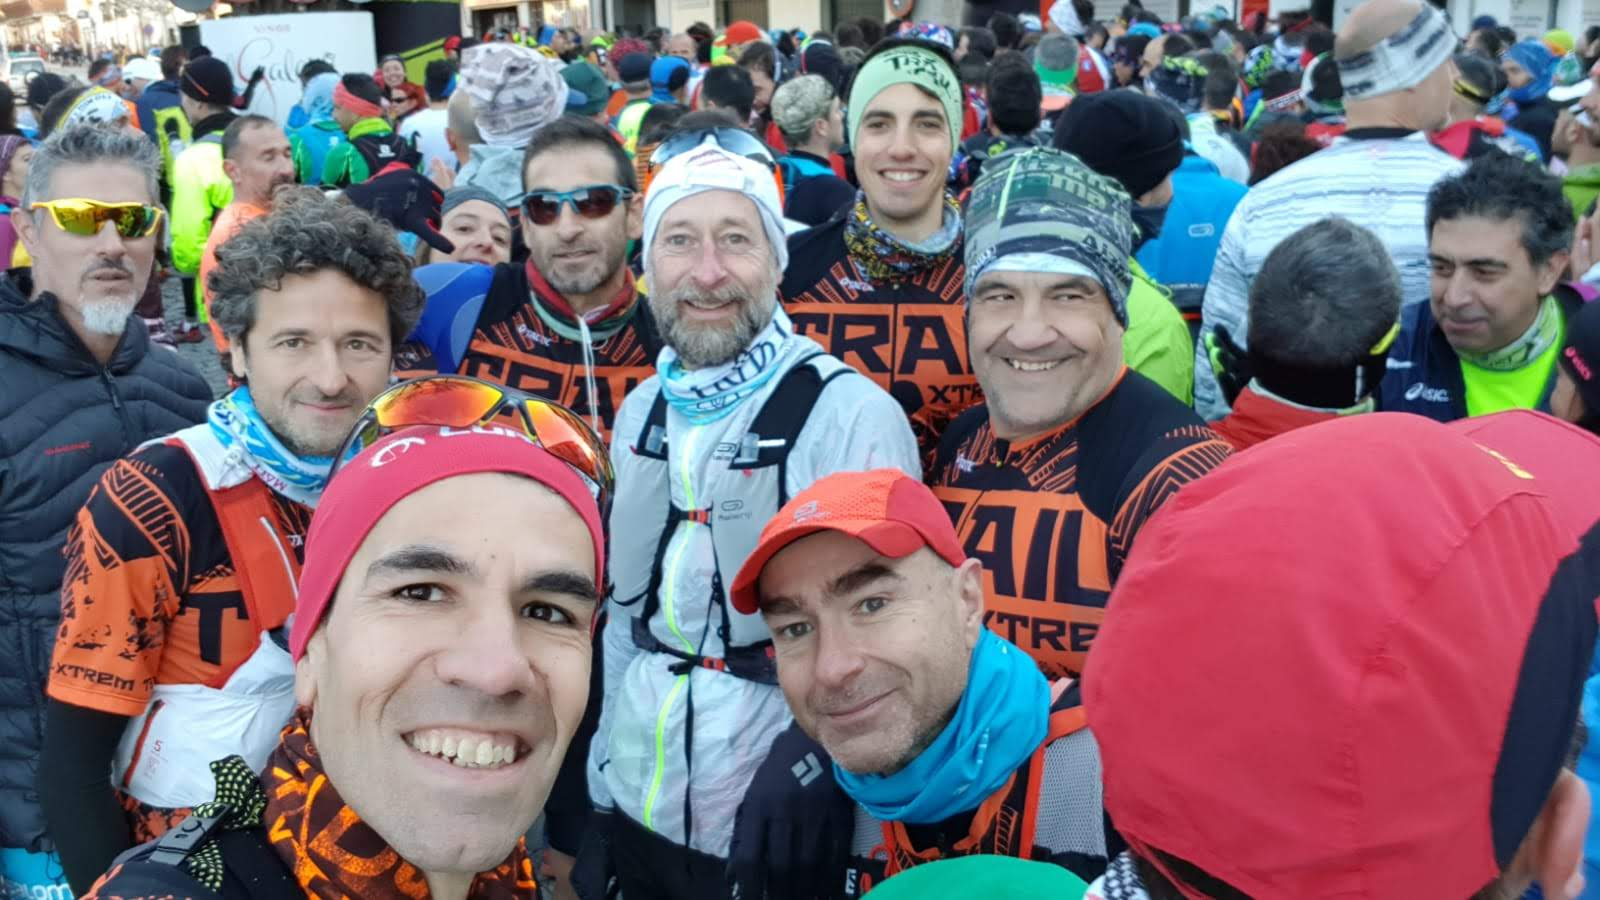 TRAILXTREM TEAM